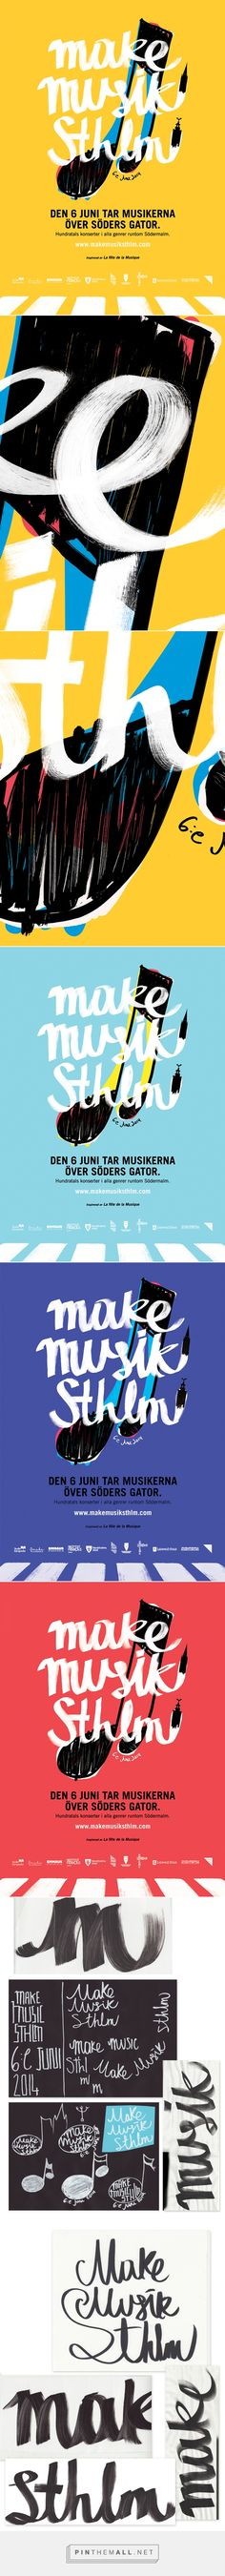 https://www.behance.net/gallery/16008609/Poster-for-Make-Music-Stockholm-festival - Fonte